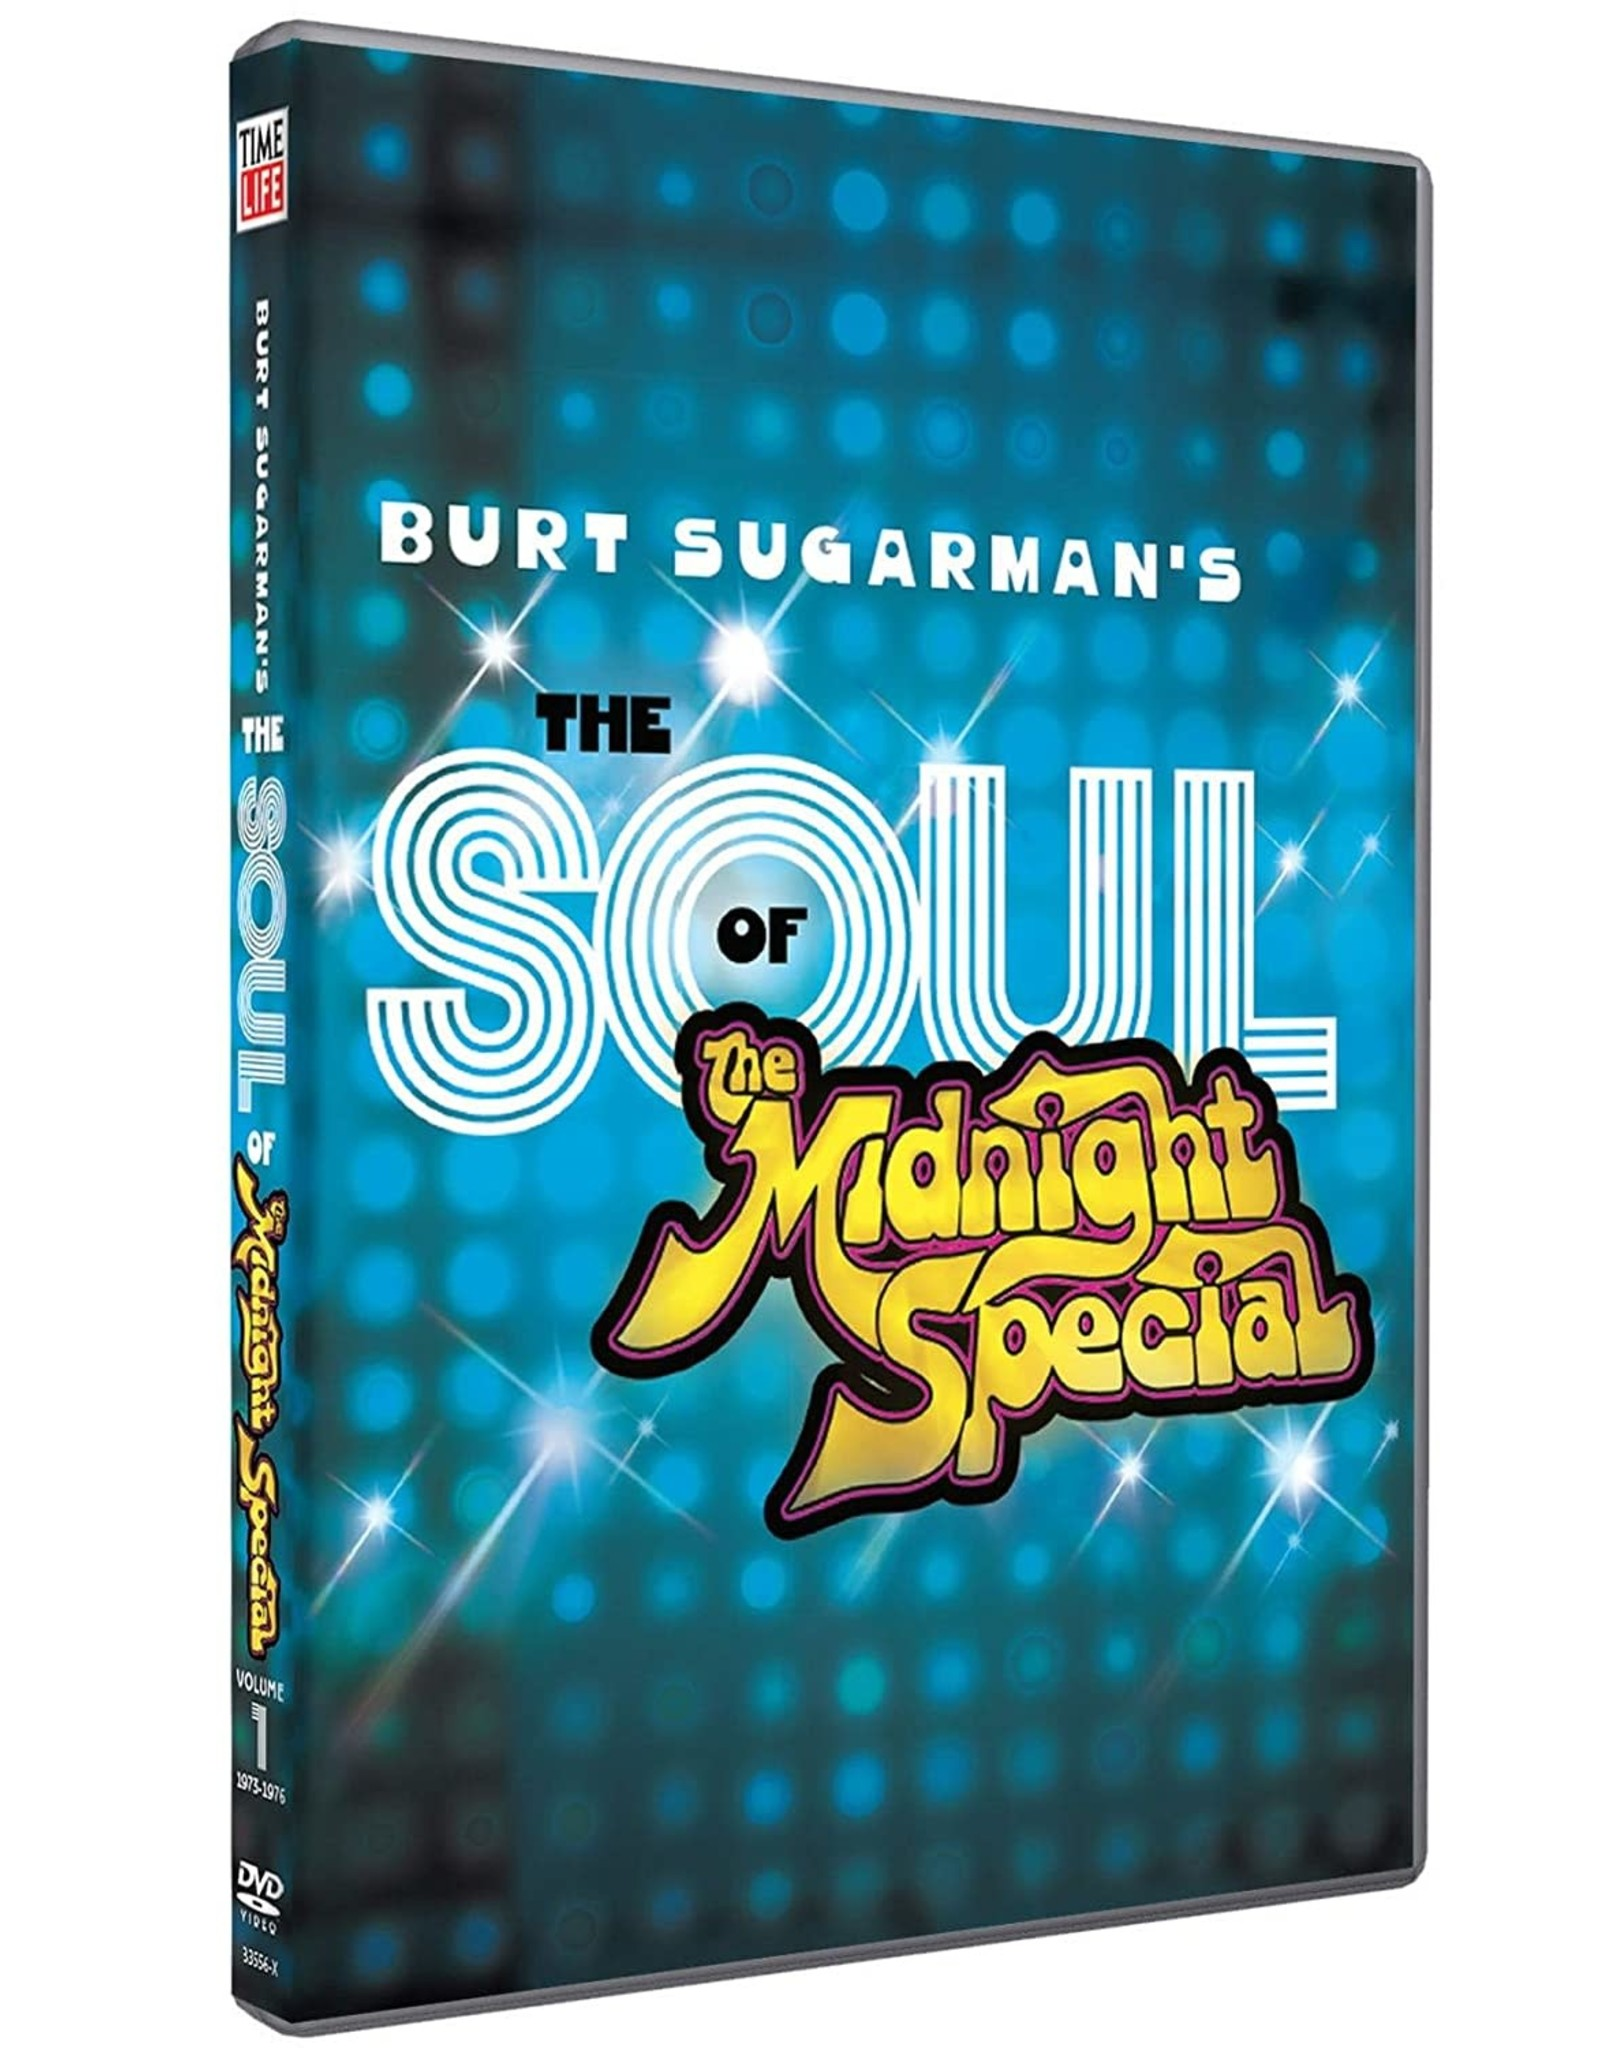 Timelife Various: The Soul of Midnight Special DVD